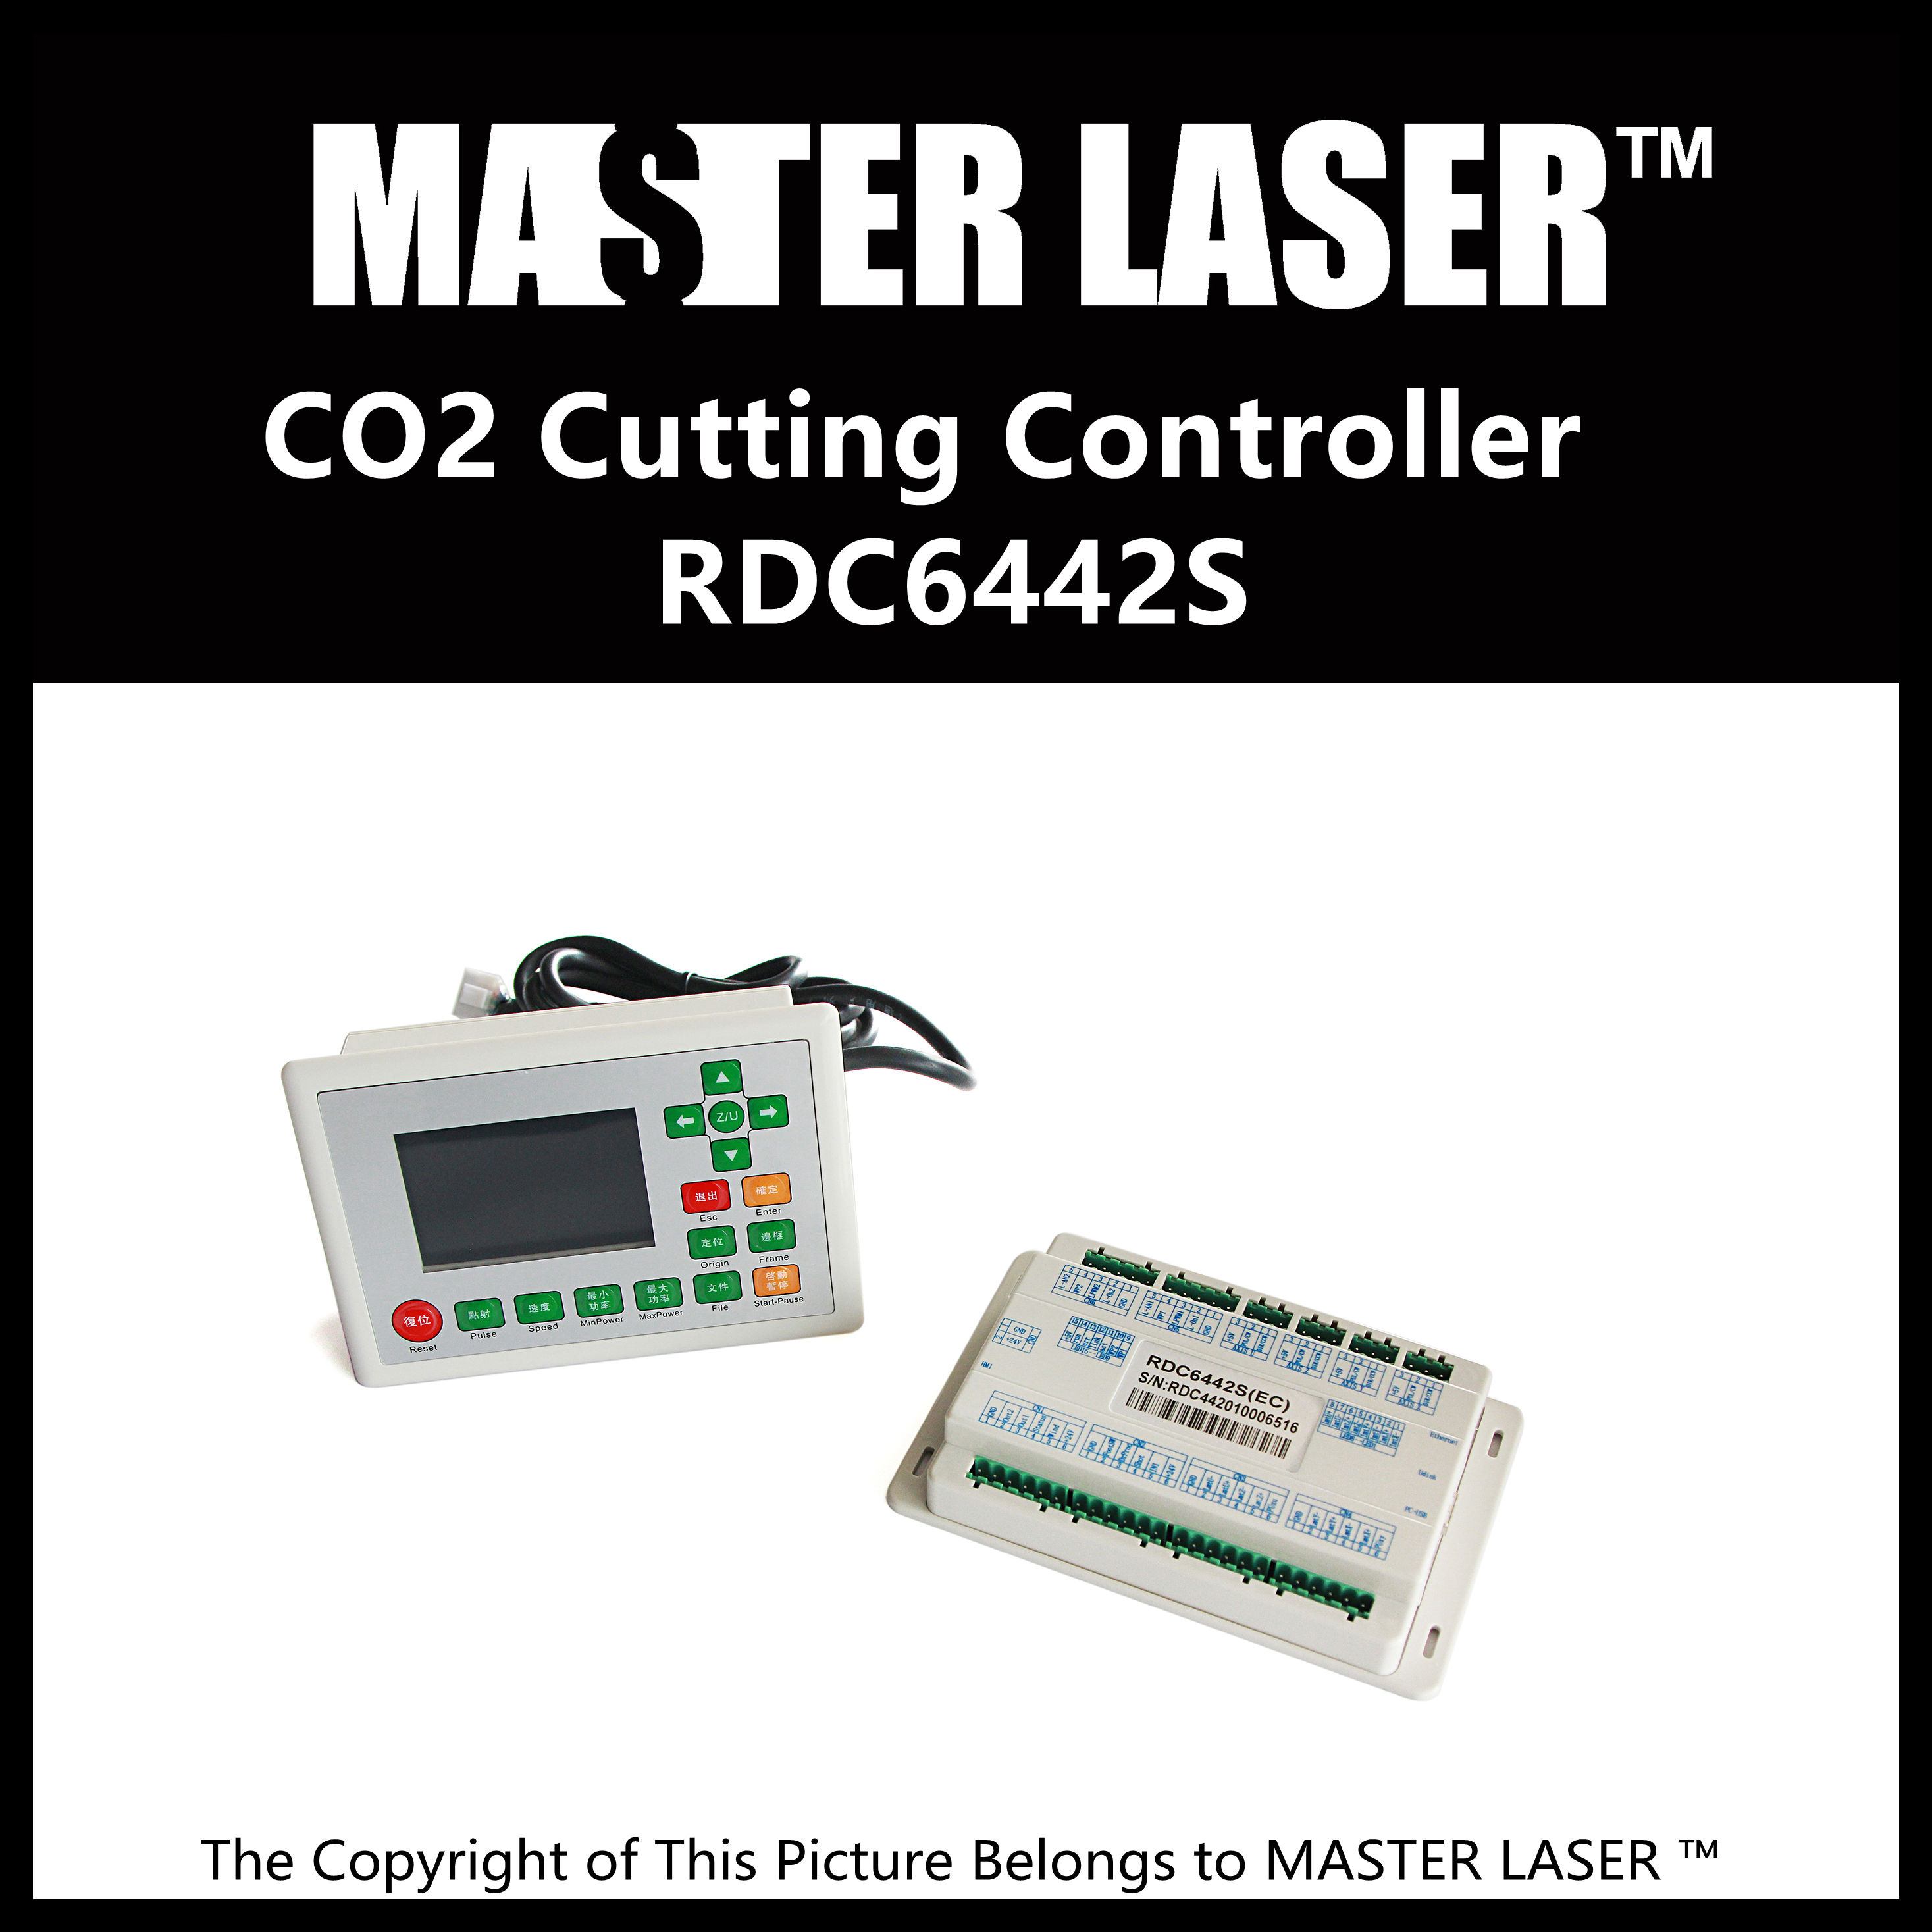 Low Price UPGRADE DSP Controller for Laser Engraving Cutting Machine RUIDA RDC6442G RDC6442S Laser Motion Control Card new generation highest power 100w laser tube 80w for fabric laser cutting machine price low